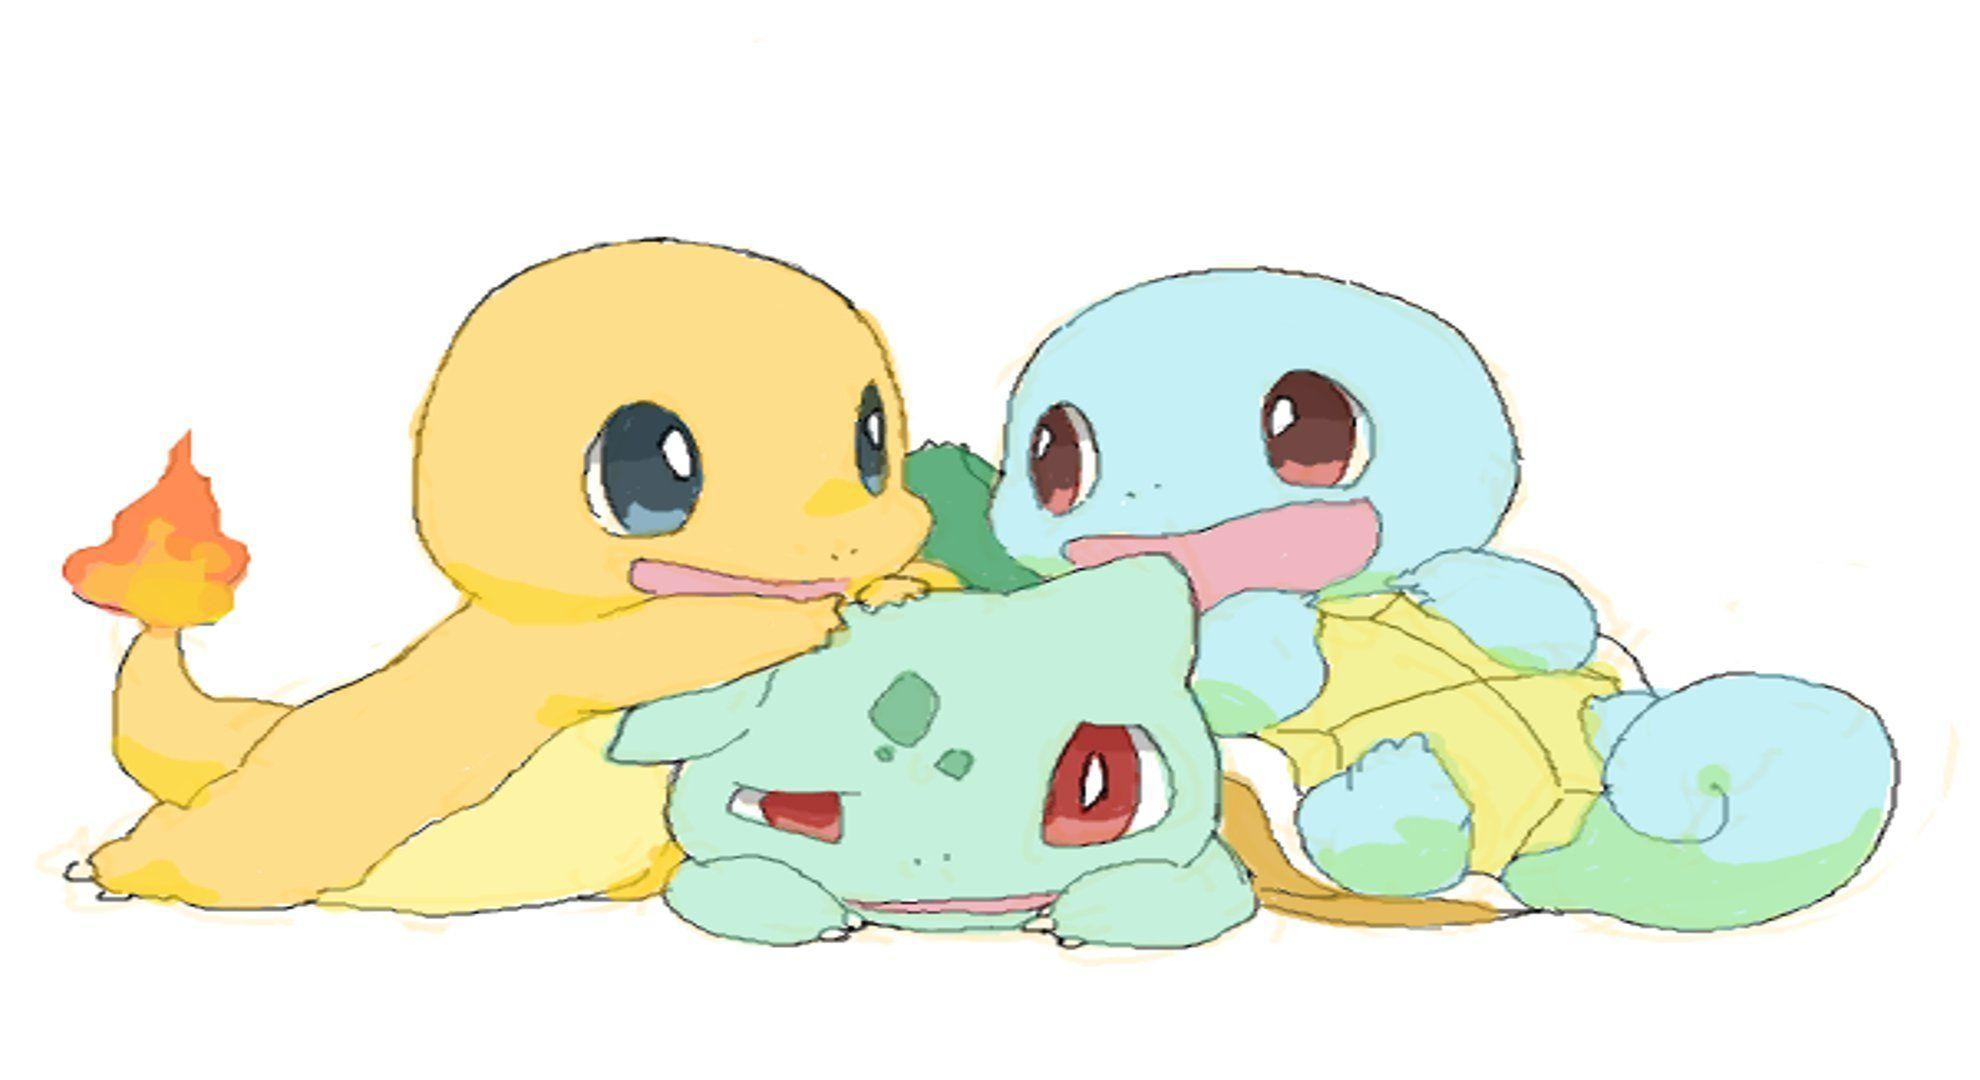 And Squirtle Bulbasaur Charmander Cute Pokemon Squirtle Wallpaper .